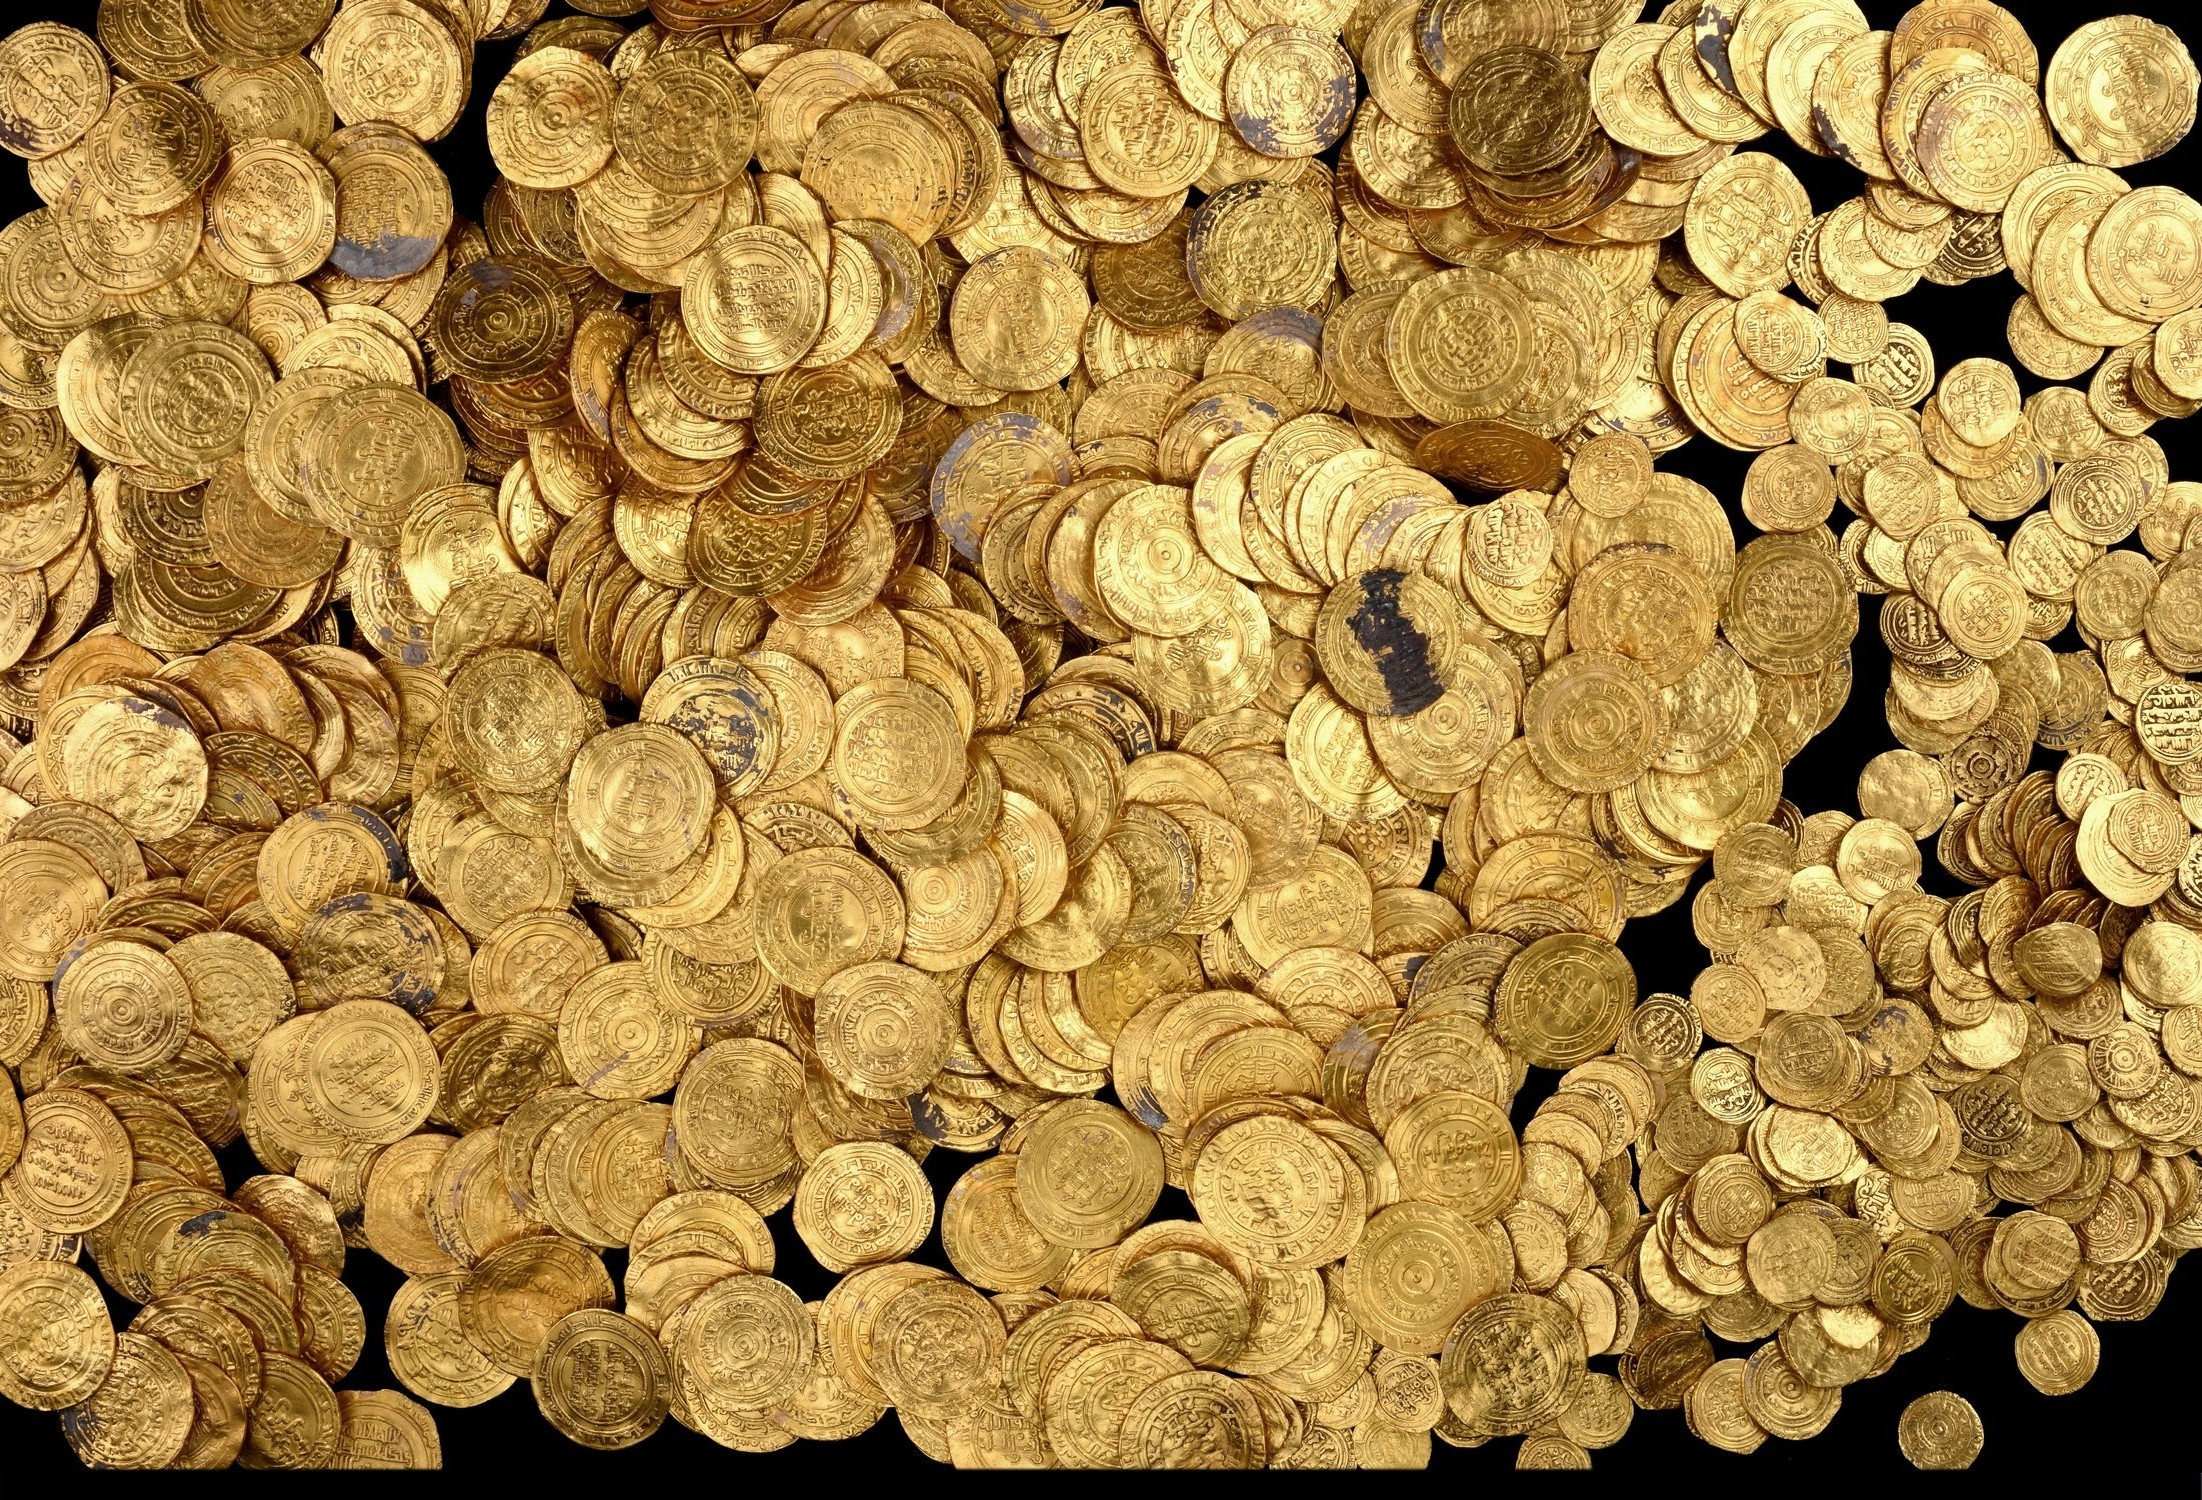 1000-Year-Old Gold Treasure Found by Divers in Caesarea (PHOTOS)